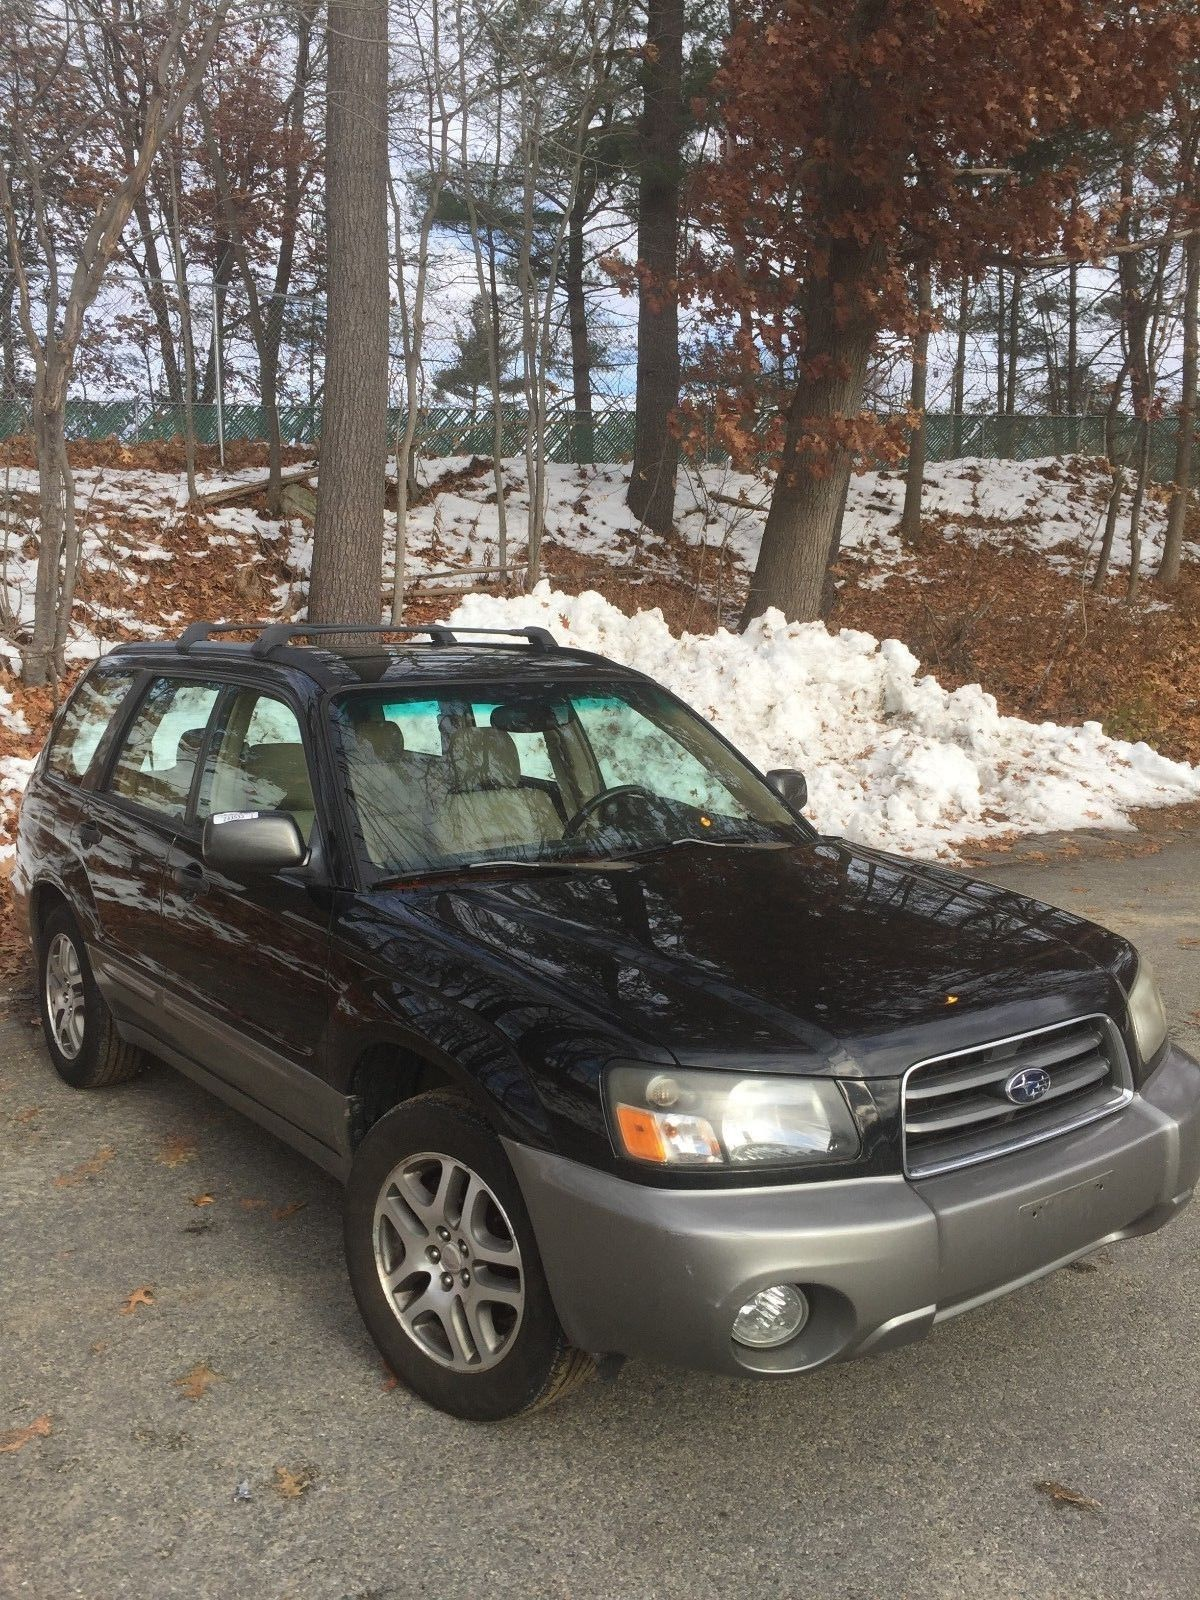 great 2005 subaru forester ll bean 2005 subaru forester xs ll bean edit best all wheel drive nr. Black Bedroom Furniture Sets. Home Design Ideas